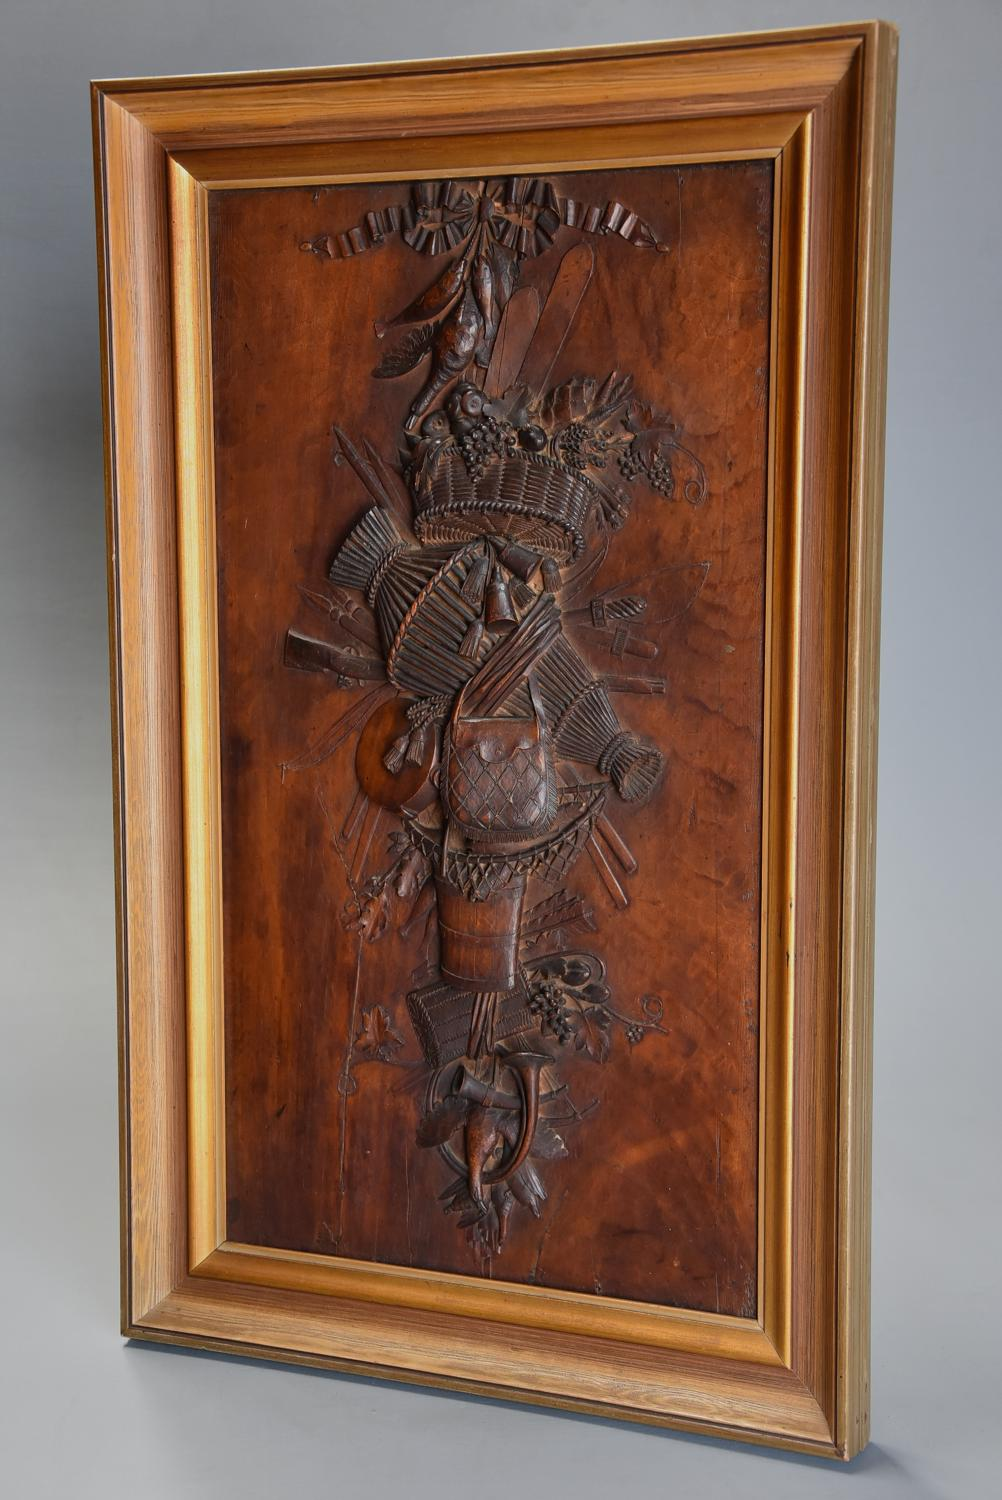 Exhibition quality 19th century Continental fruitwood trophy carving